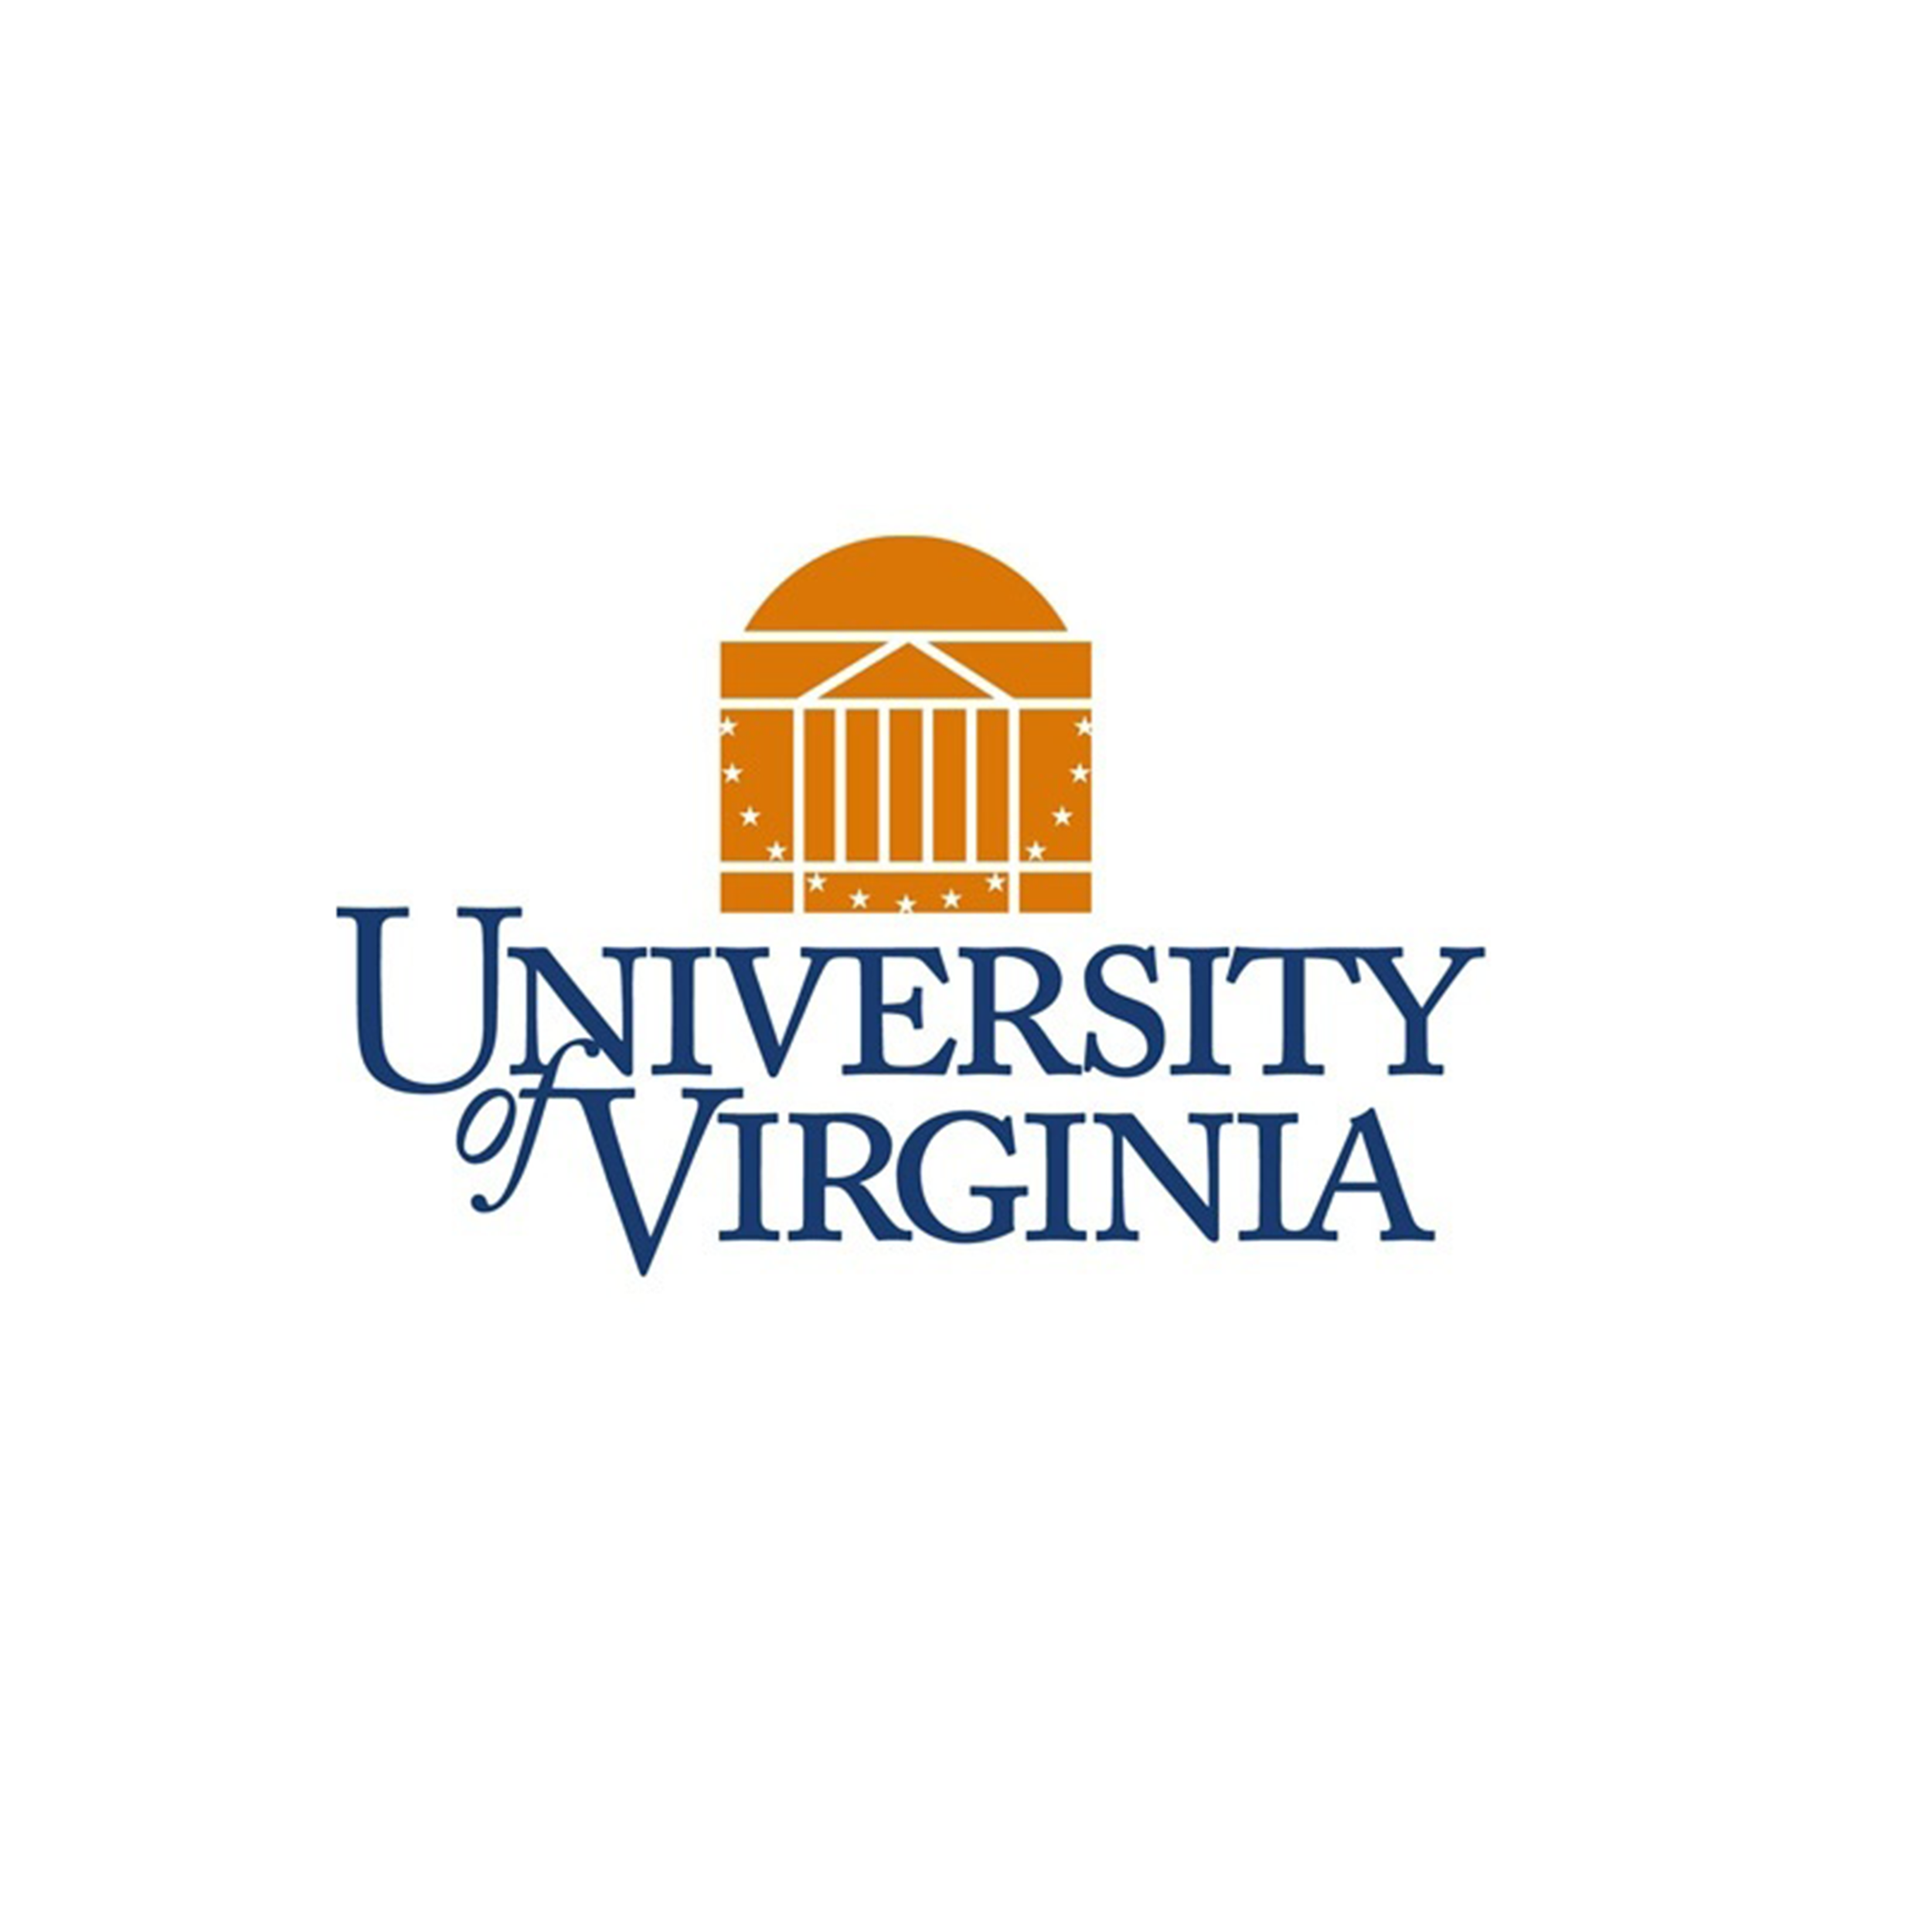 University of Virginia kopi.png